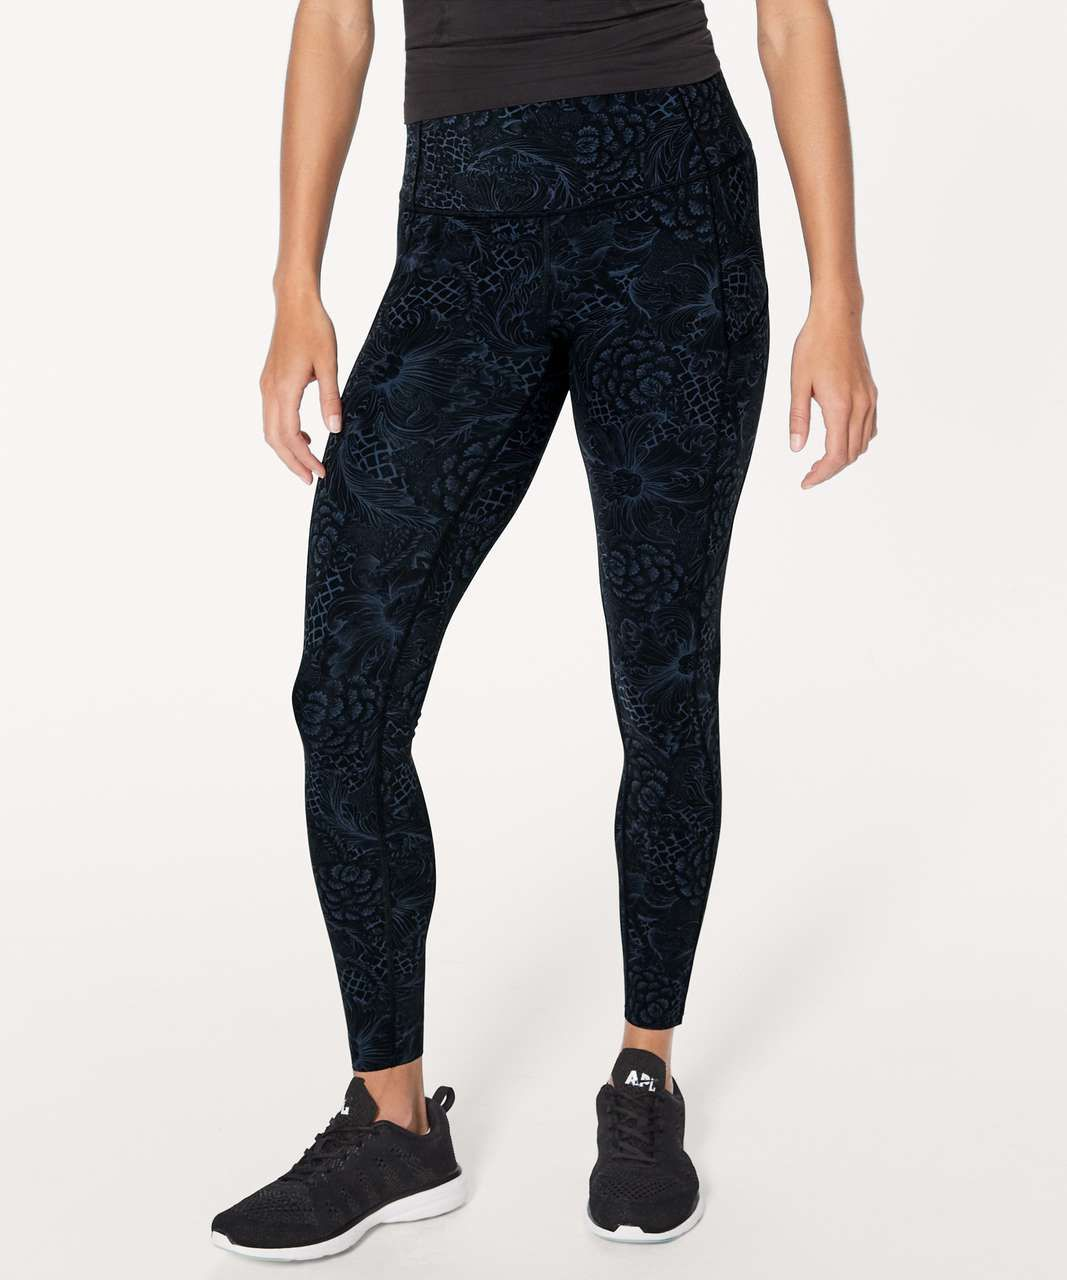 6789c26286e70a Lululemon Fast & Free 7/8 Tight II (Nulux 25